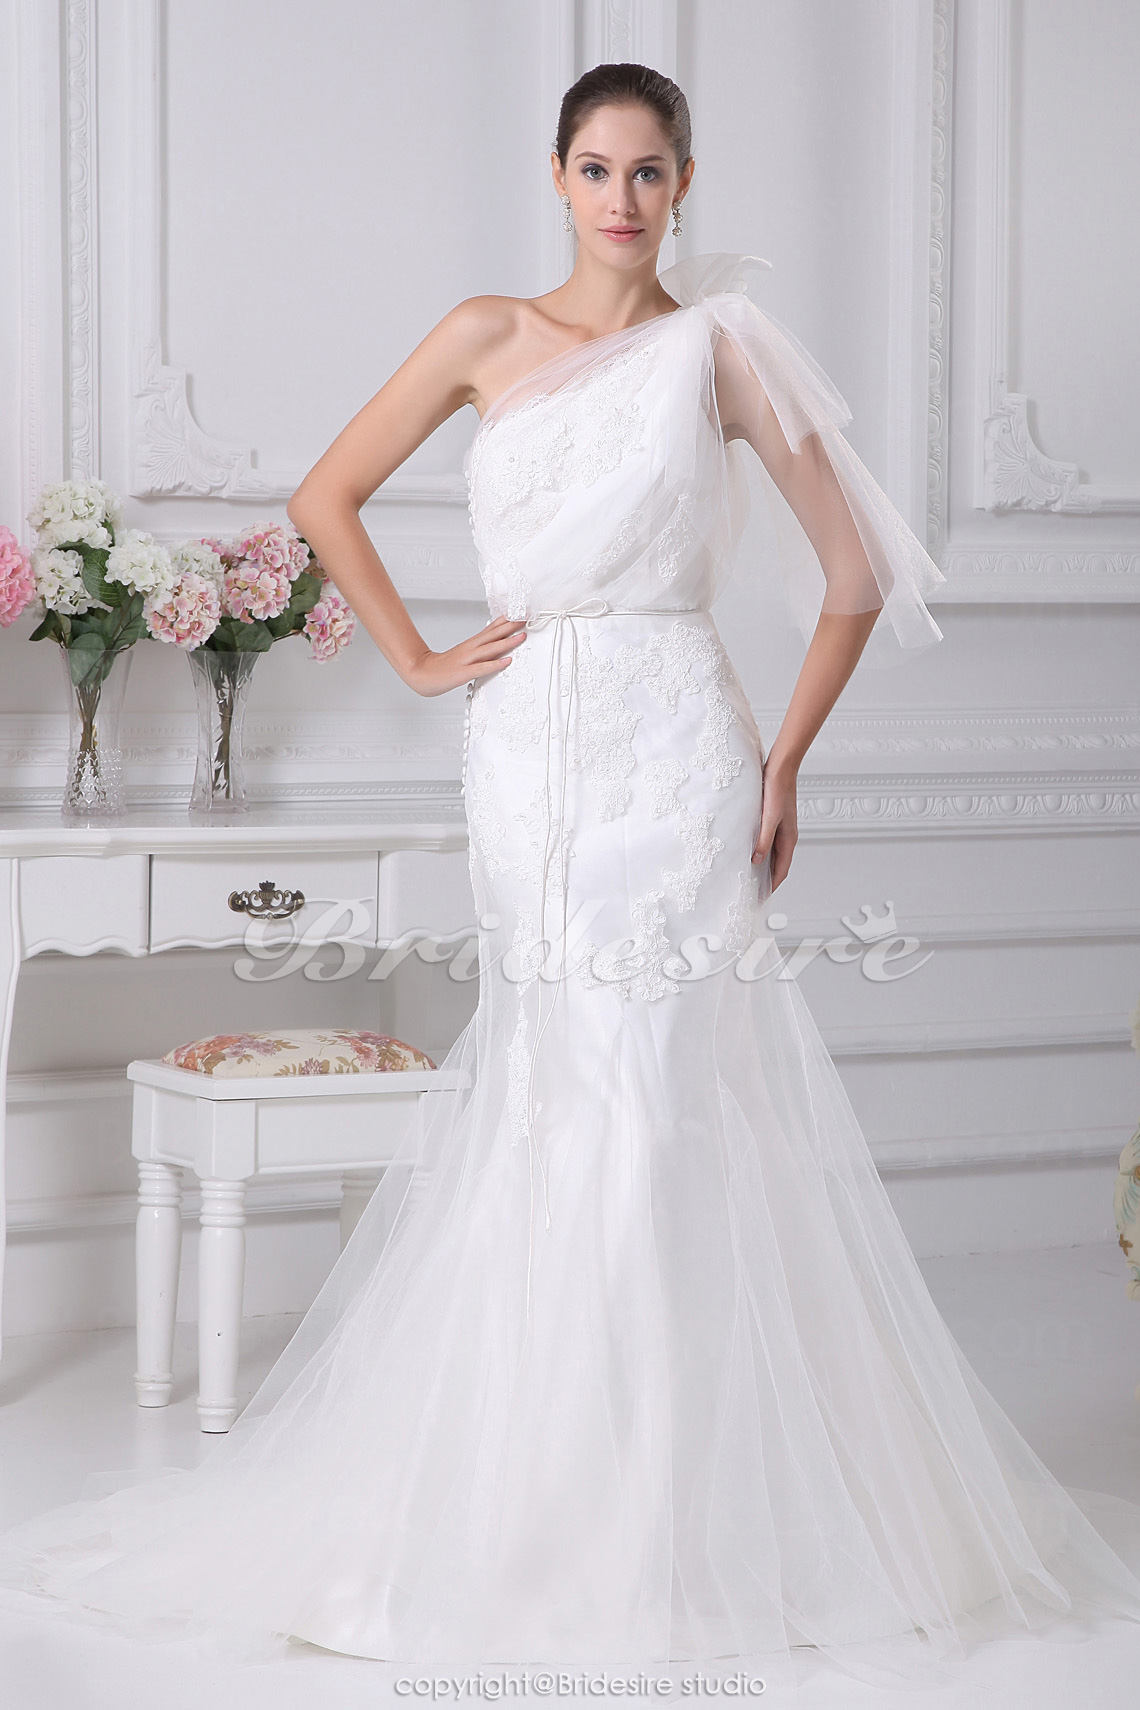 Trumpet/Mermaid One Shoulder Court Train Half Sleeve Satin Tulle Wedding Dress